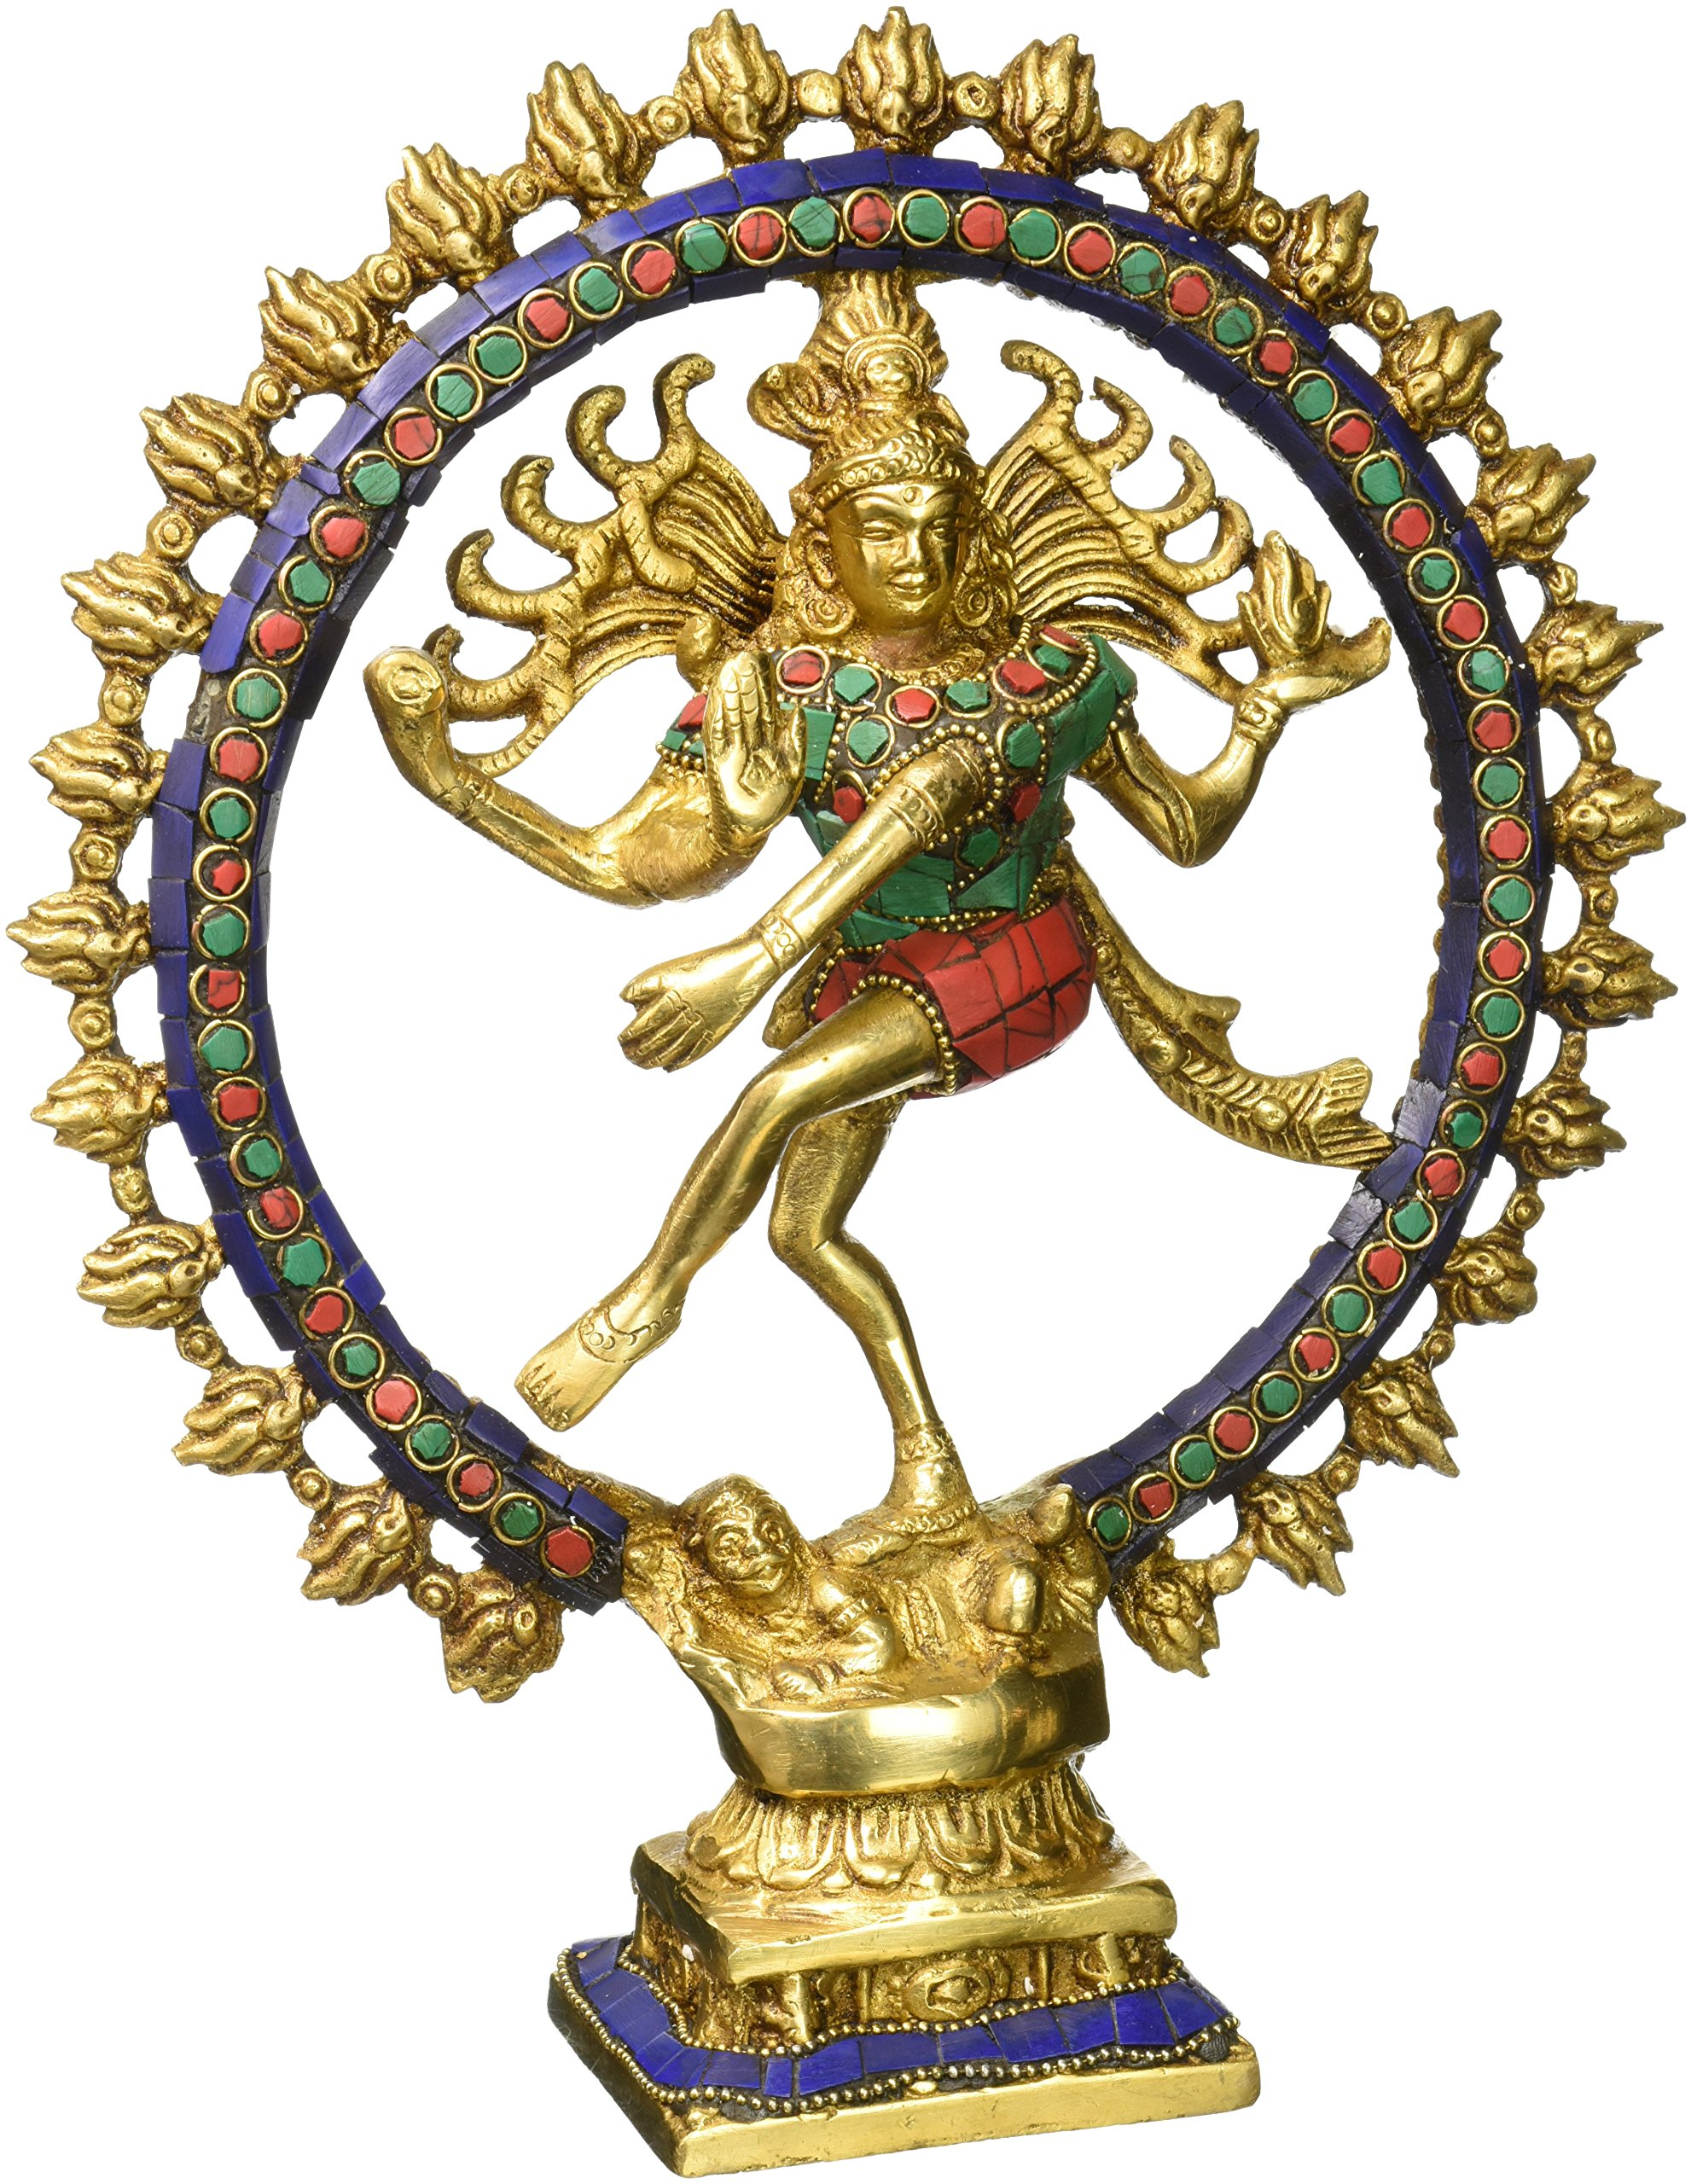 Aone India 11'' Large Nataraja Shiva Statue Lord Brass Sculpture Hindu God Figurine Dancing Shiva + Cash Envelope (Pack Of 10)